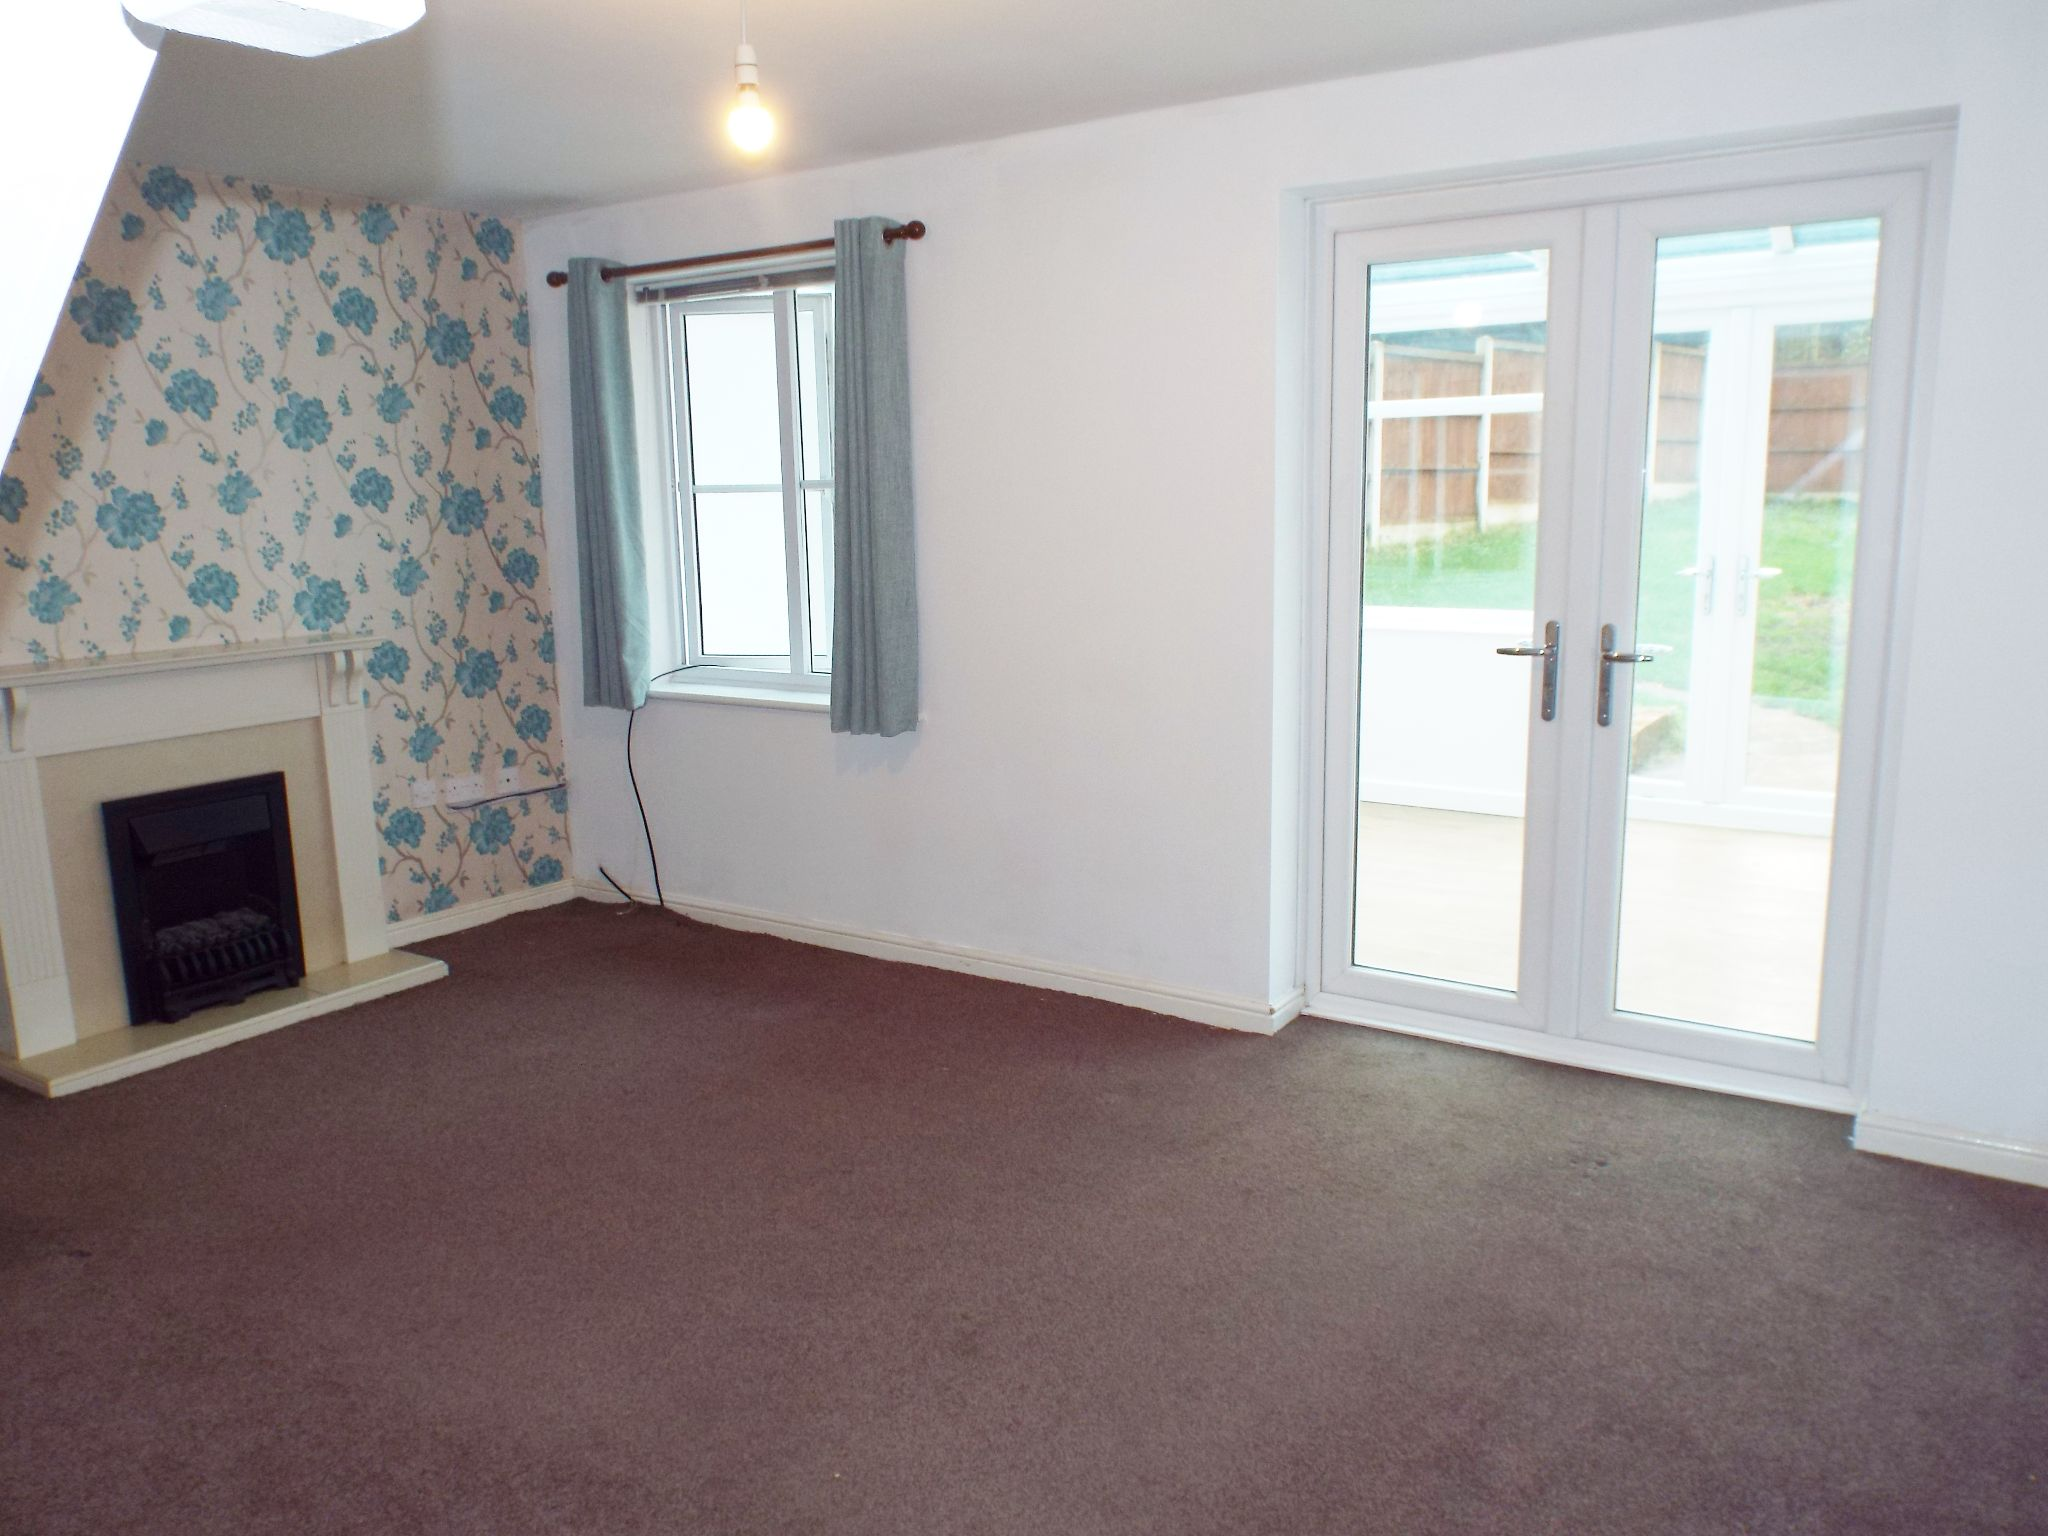 2 bedroom mews house in Chorley - Lounge.